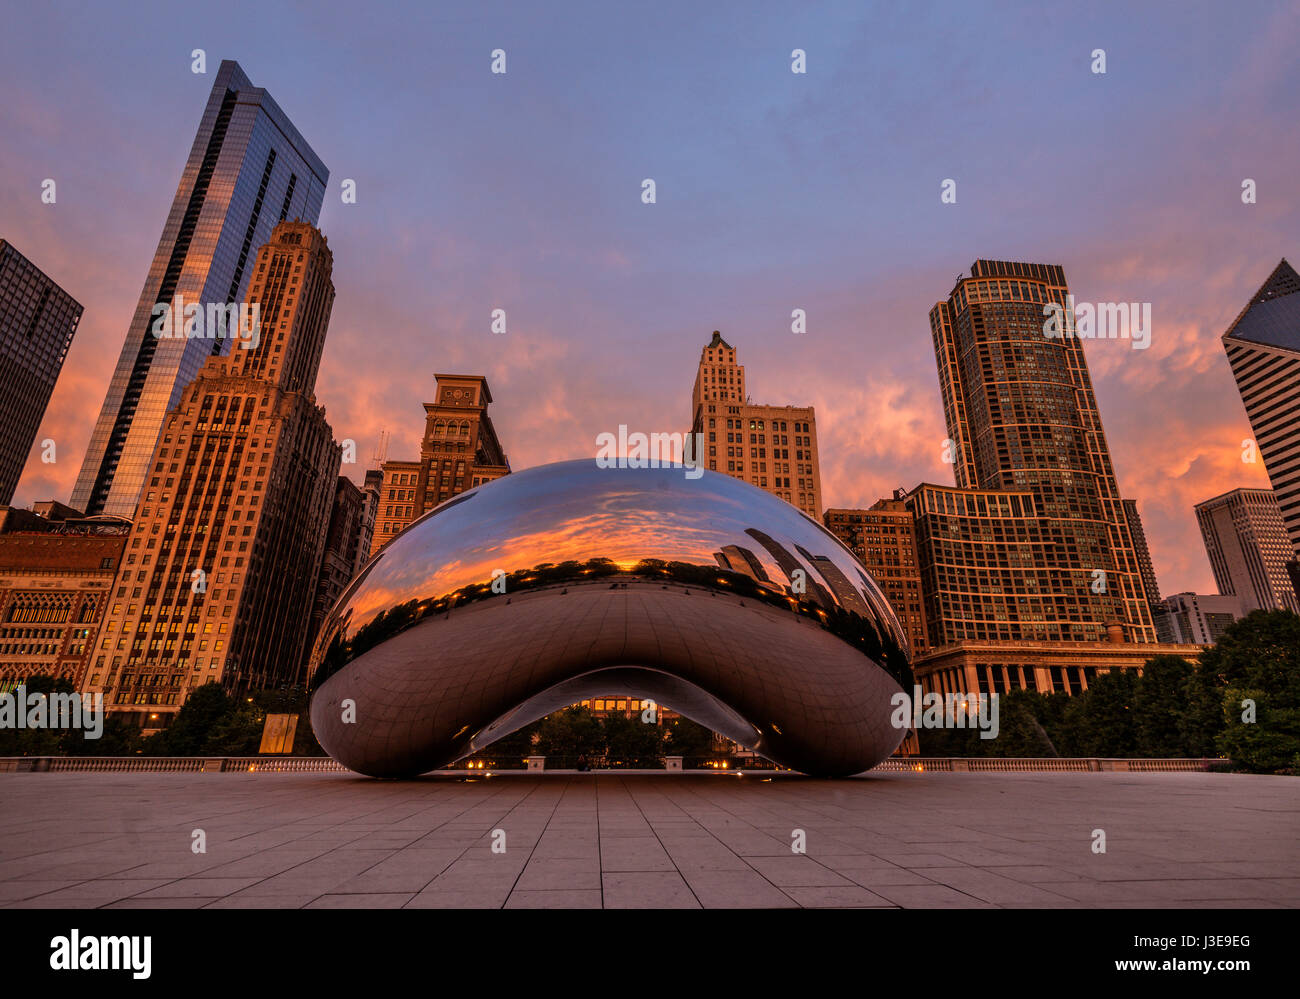 Early morning picture at Millenium Park showing The Bean, and surrounding buildings of Michigan Avenue and reflections - Stock Image